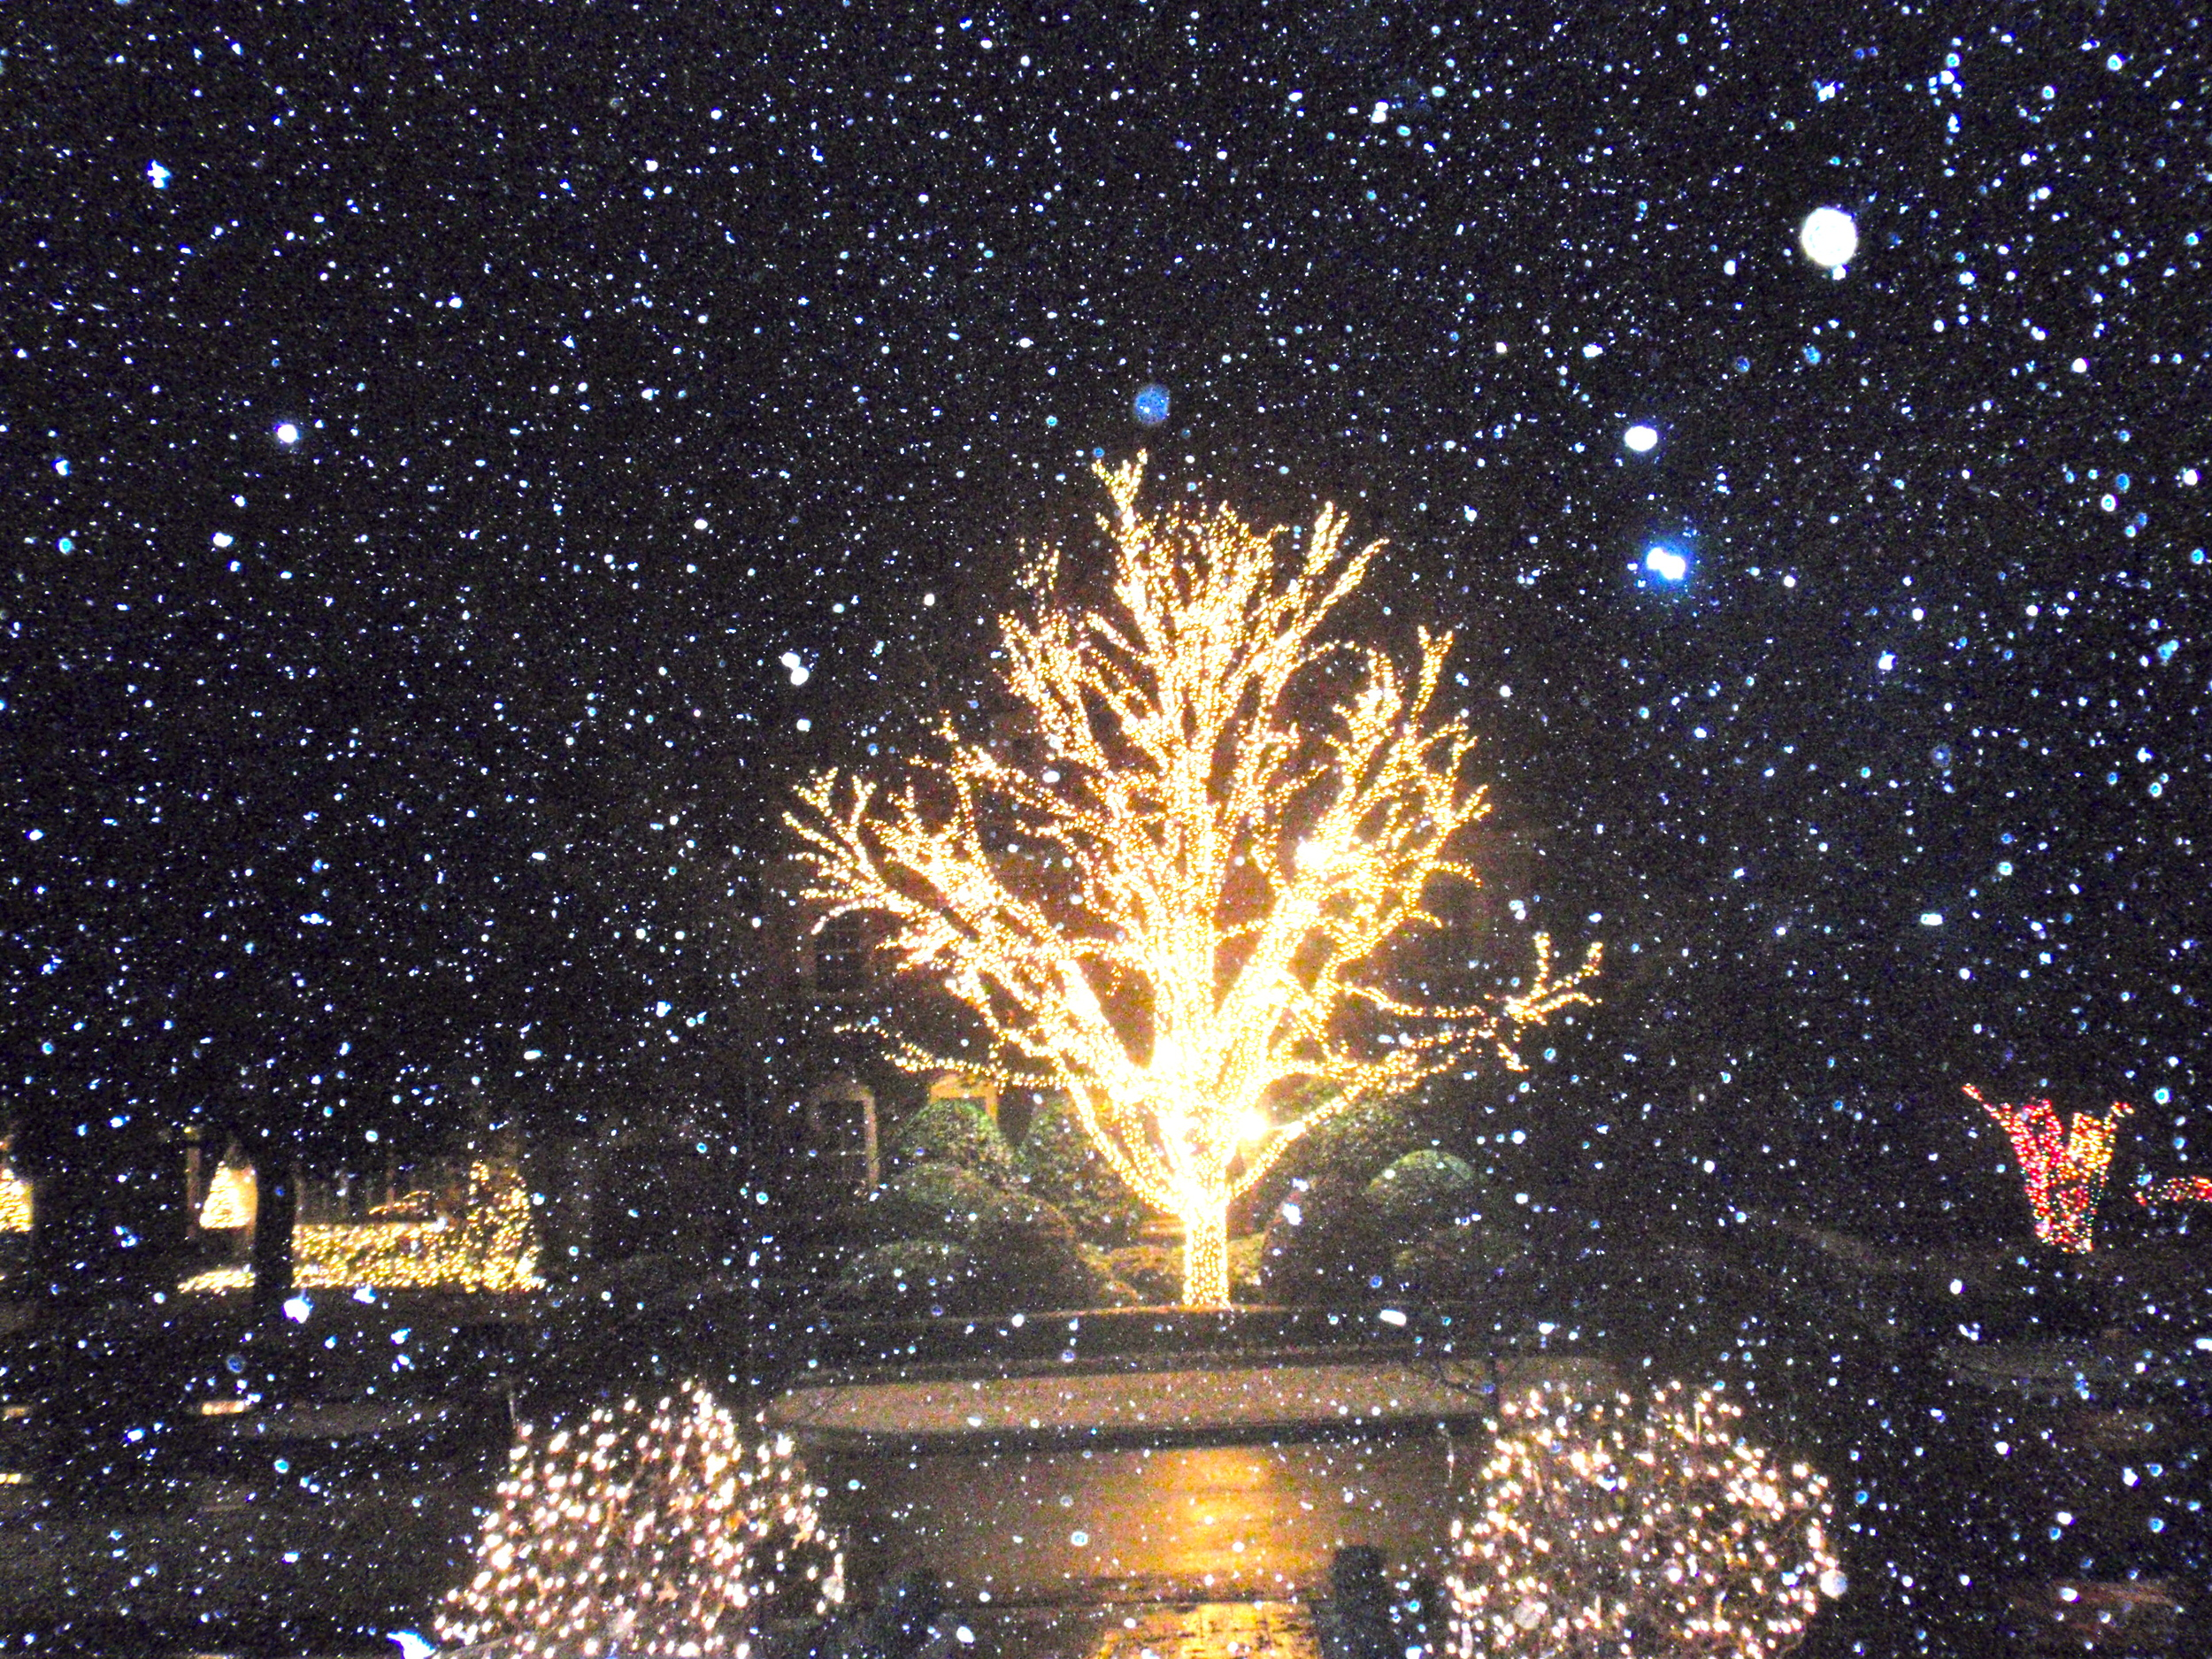 The view from my front door: Sue & Jimmy's magnificent giant tree decked-out for the Holidays